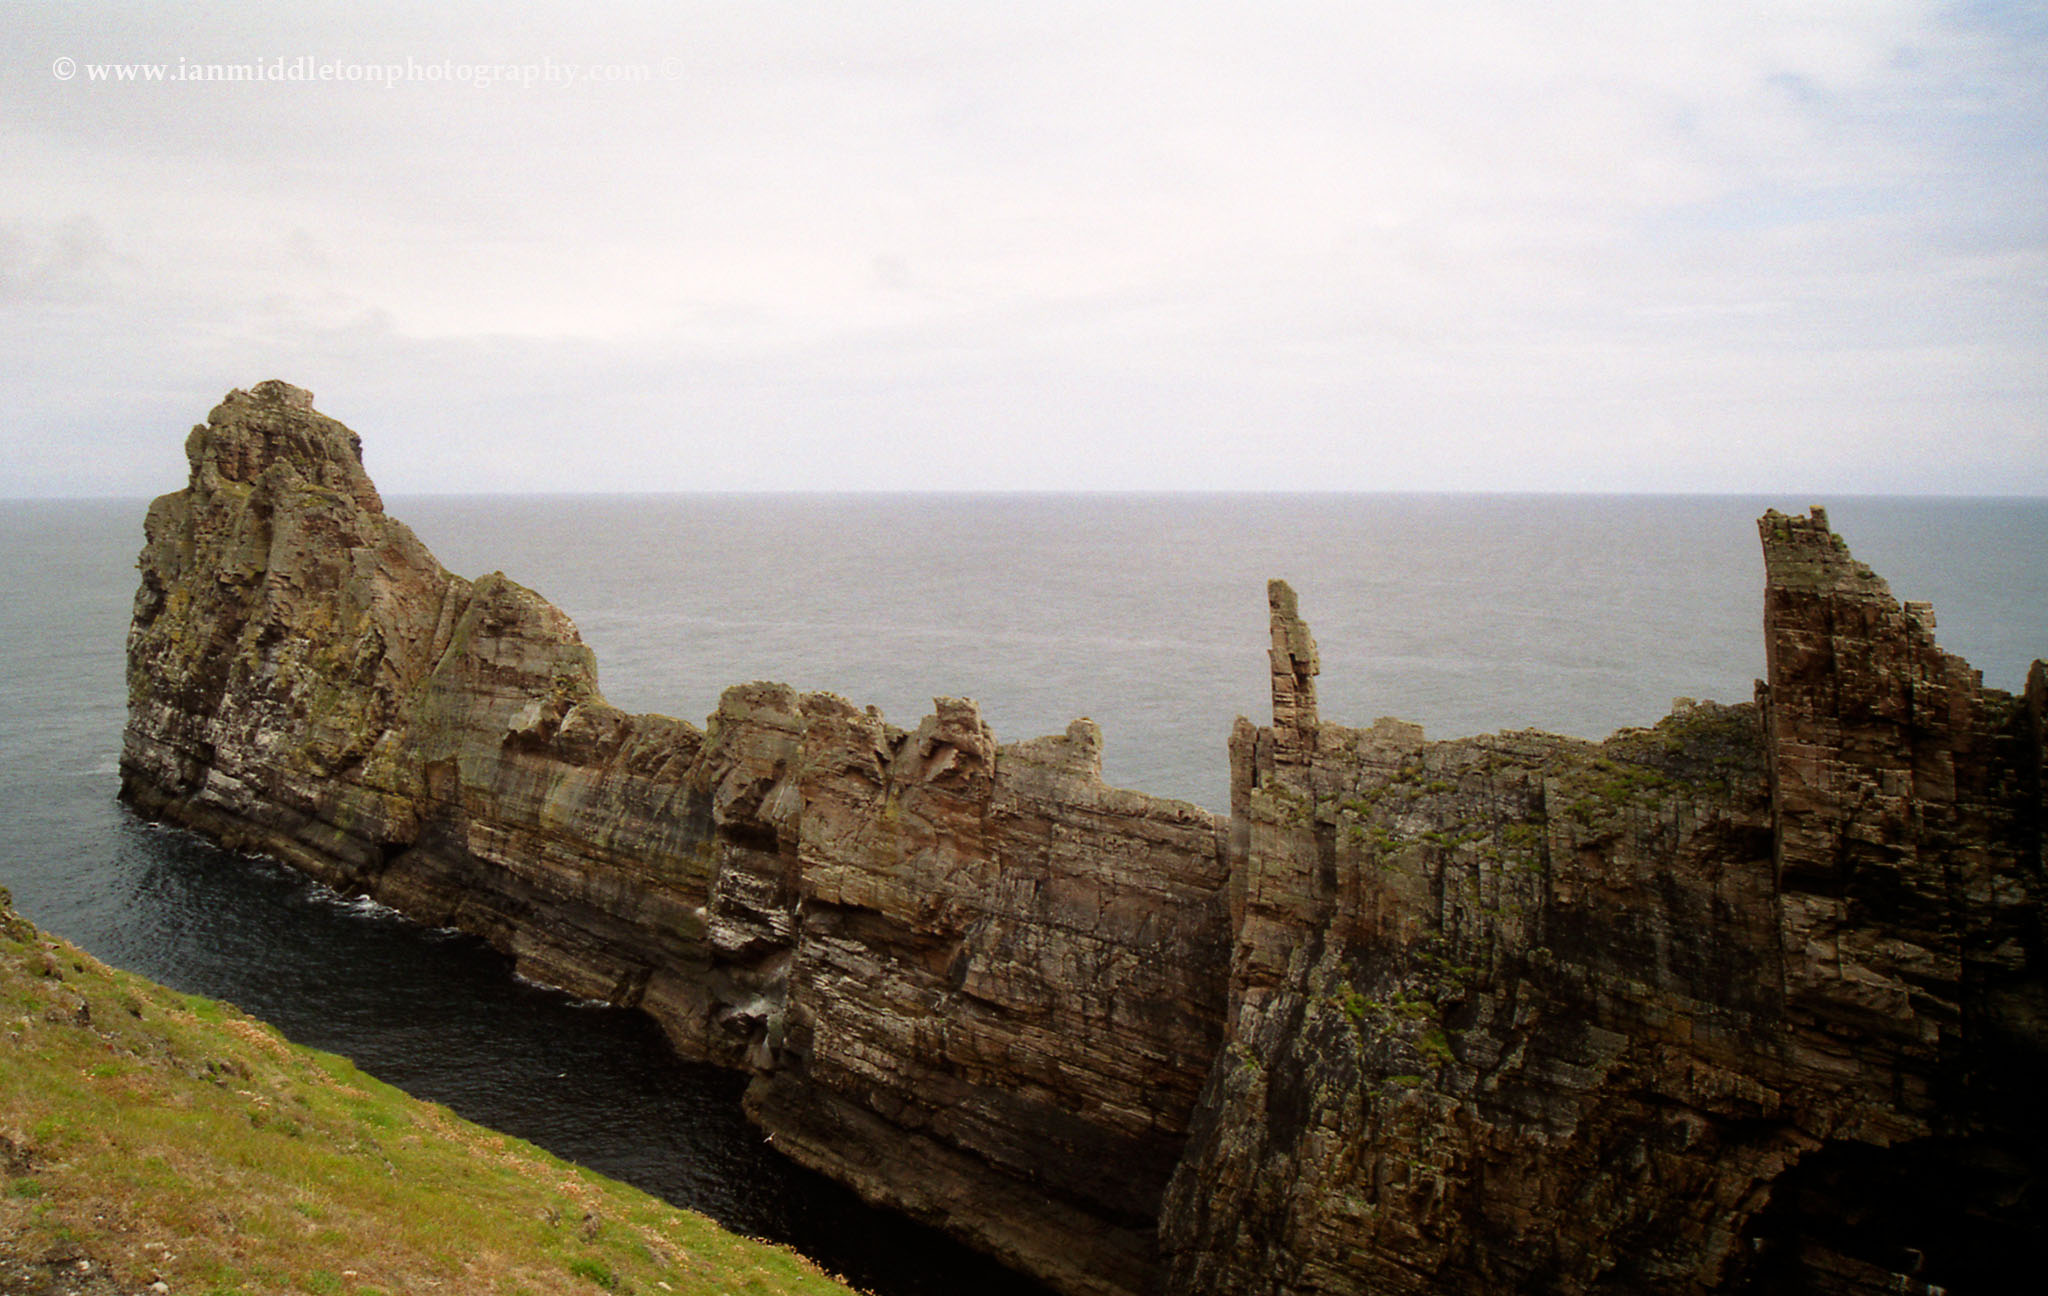 Balor's soldiers on the east side of Tory Island, County Donegal, Ireland.